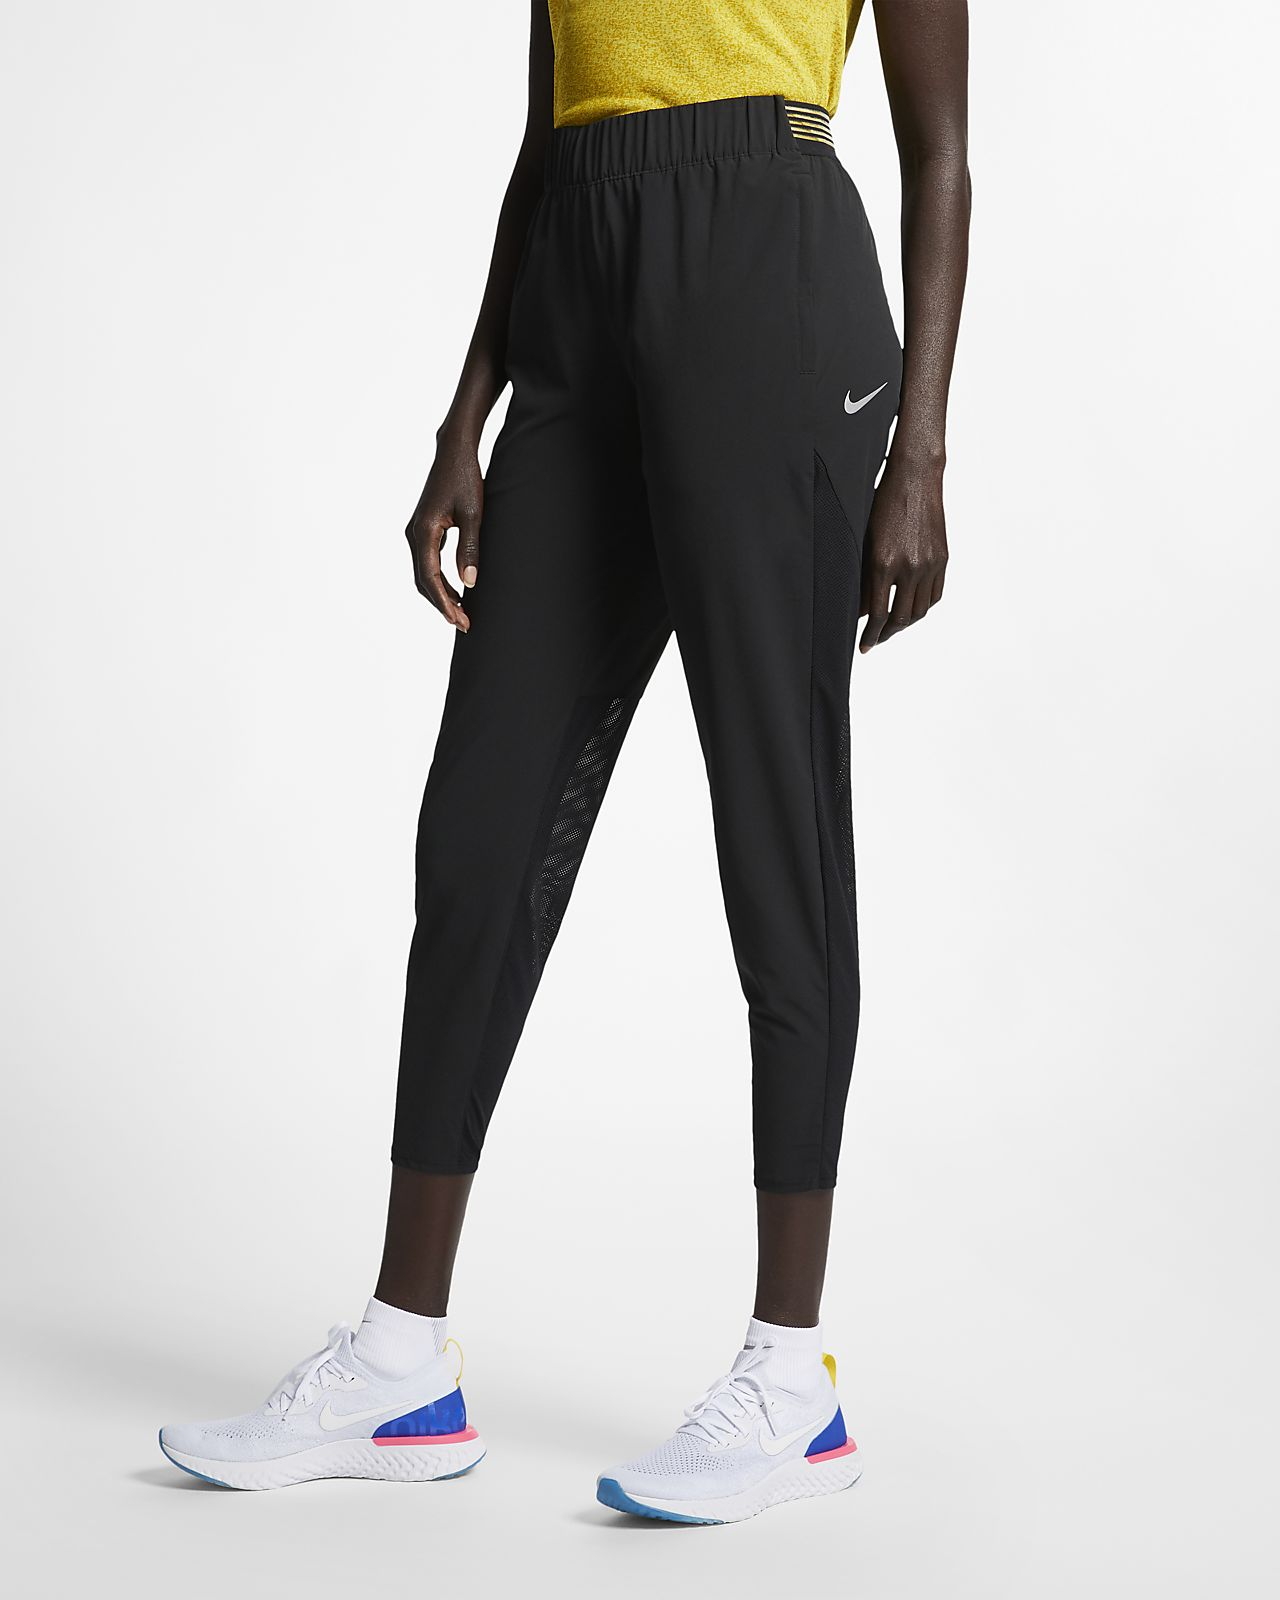 8795b01f7382 Nike Flex Essential Women s Running Trousers. Nike.com LU